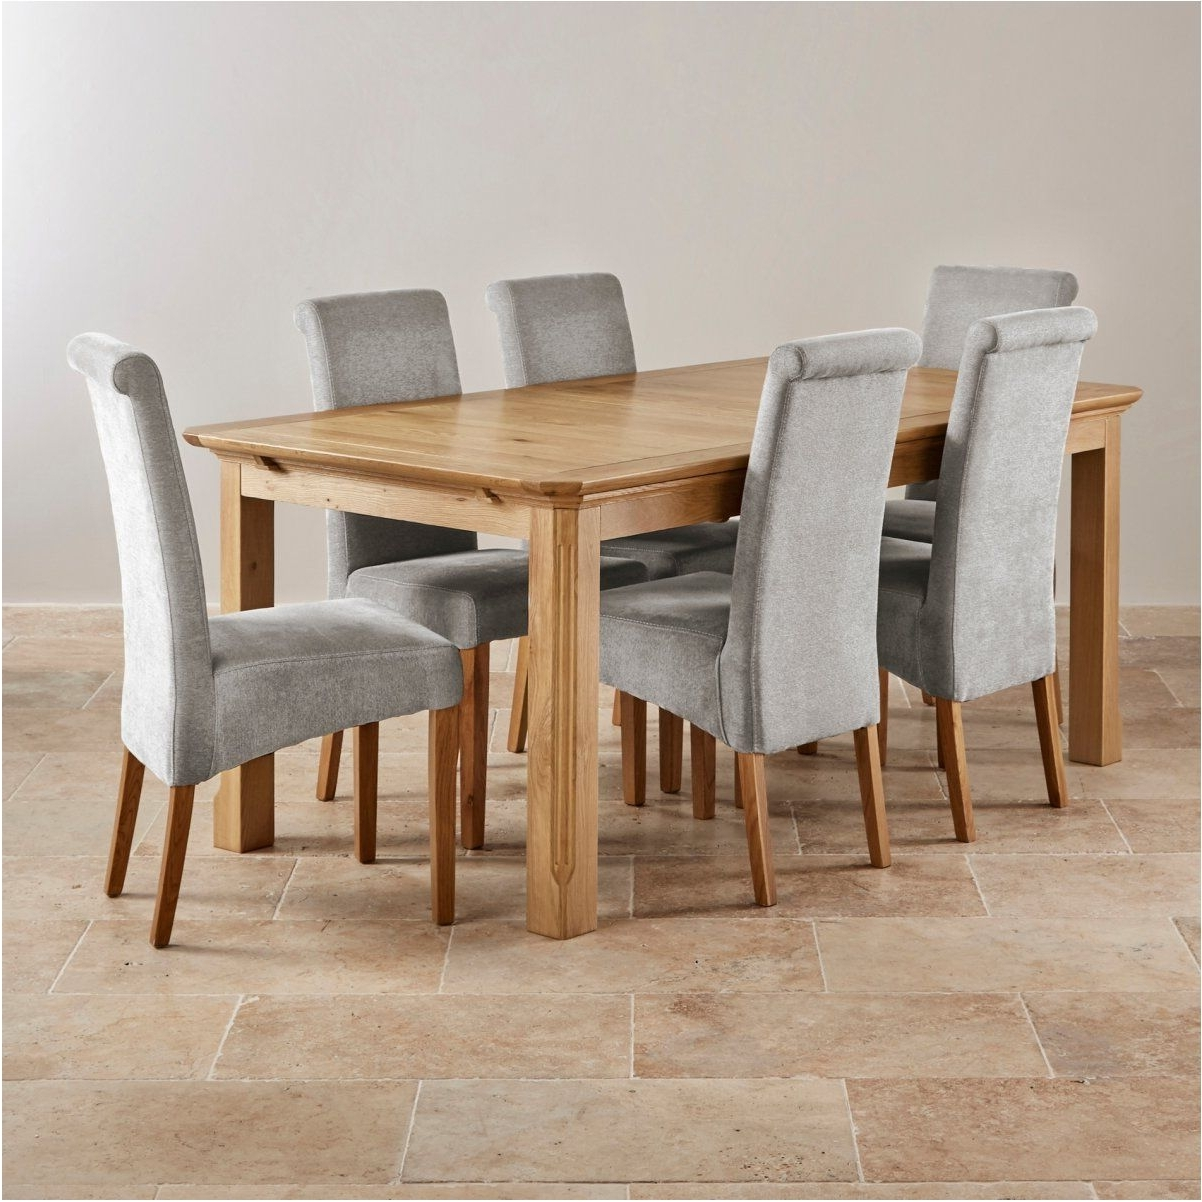 Oak Dining Set 6 Chairs With Regard To Favorite Best Solid Oak Dining Table And 6 Chairs Solid Oak Dining Table And (View 16 of 25)